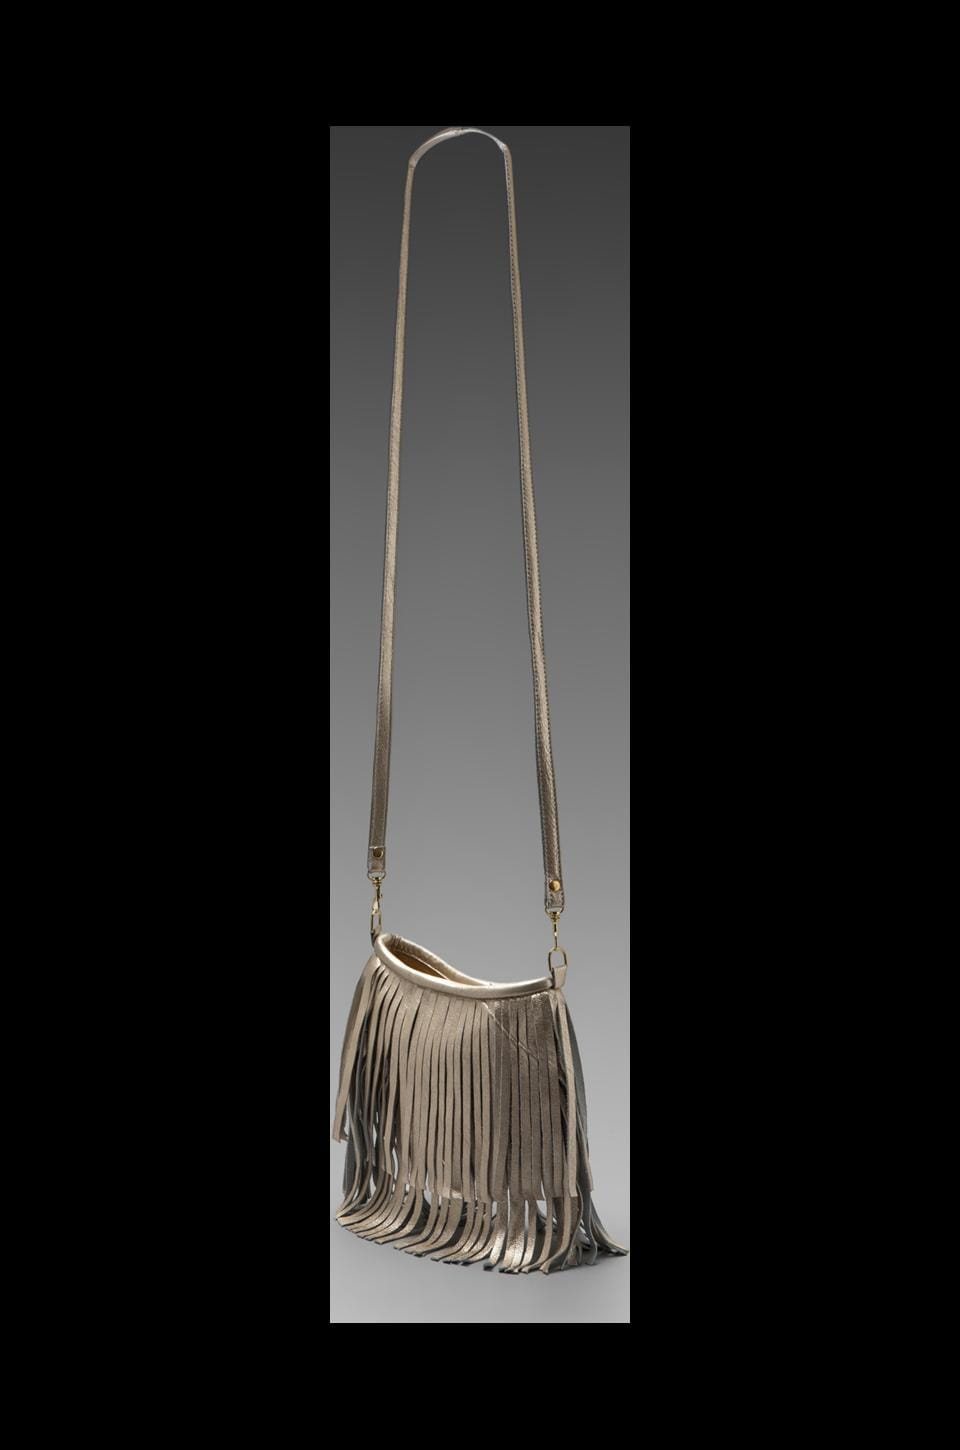 JJ Winters Small Fringe Bag in Platinum